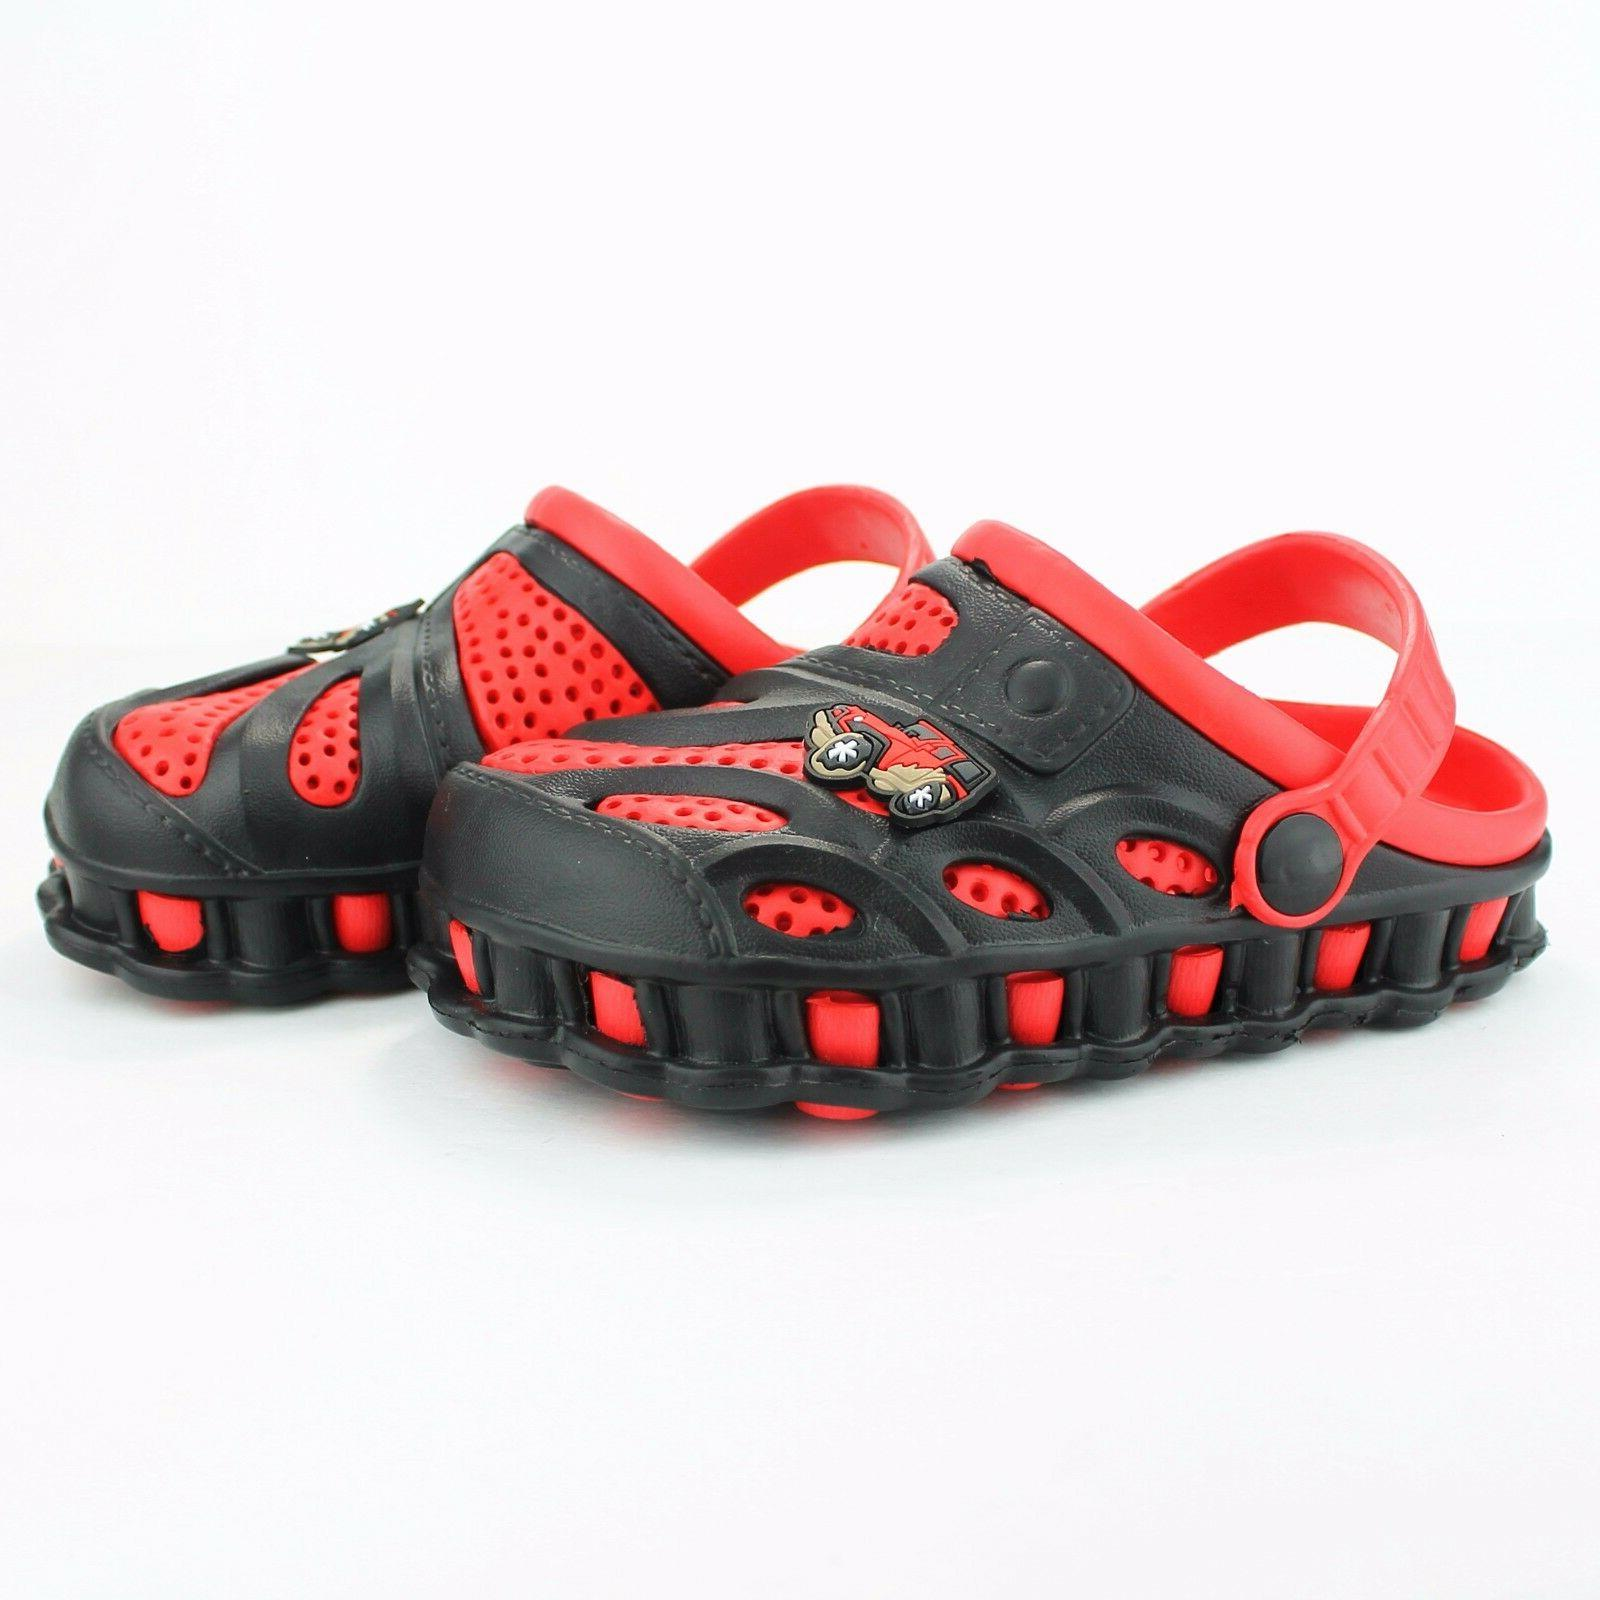 Garden Shoes Boys Kids Casual Two-tone Slipper